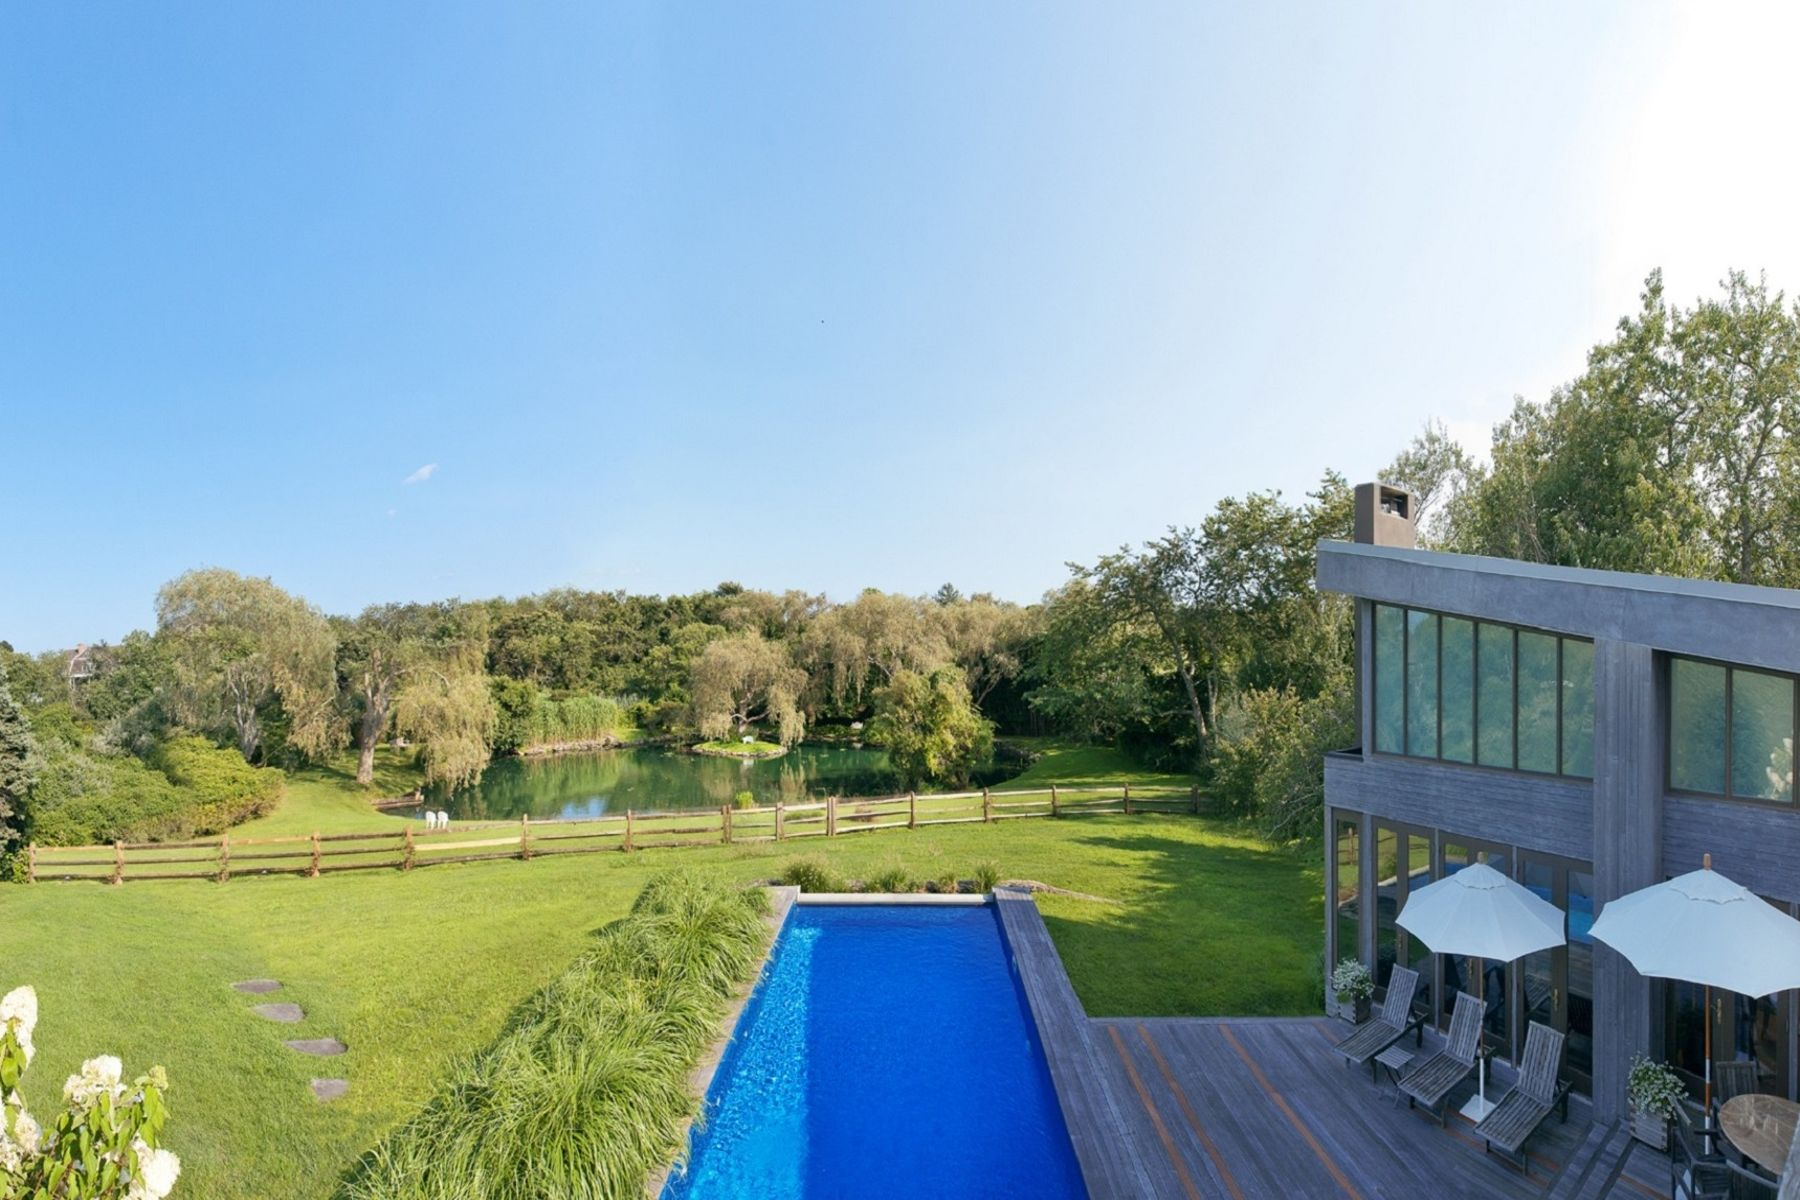 Single Family Home for Active at Privacy and Tranquility 41 Wild Goose Lane Water Mill, New York 11976 United States